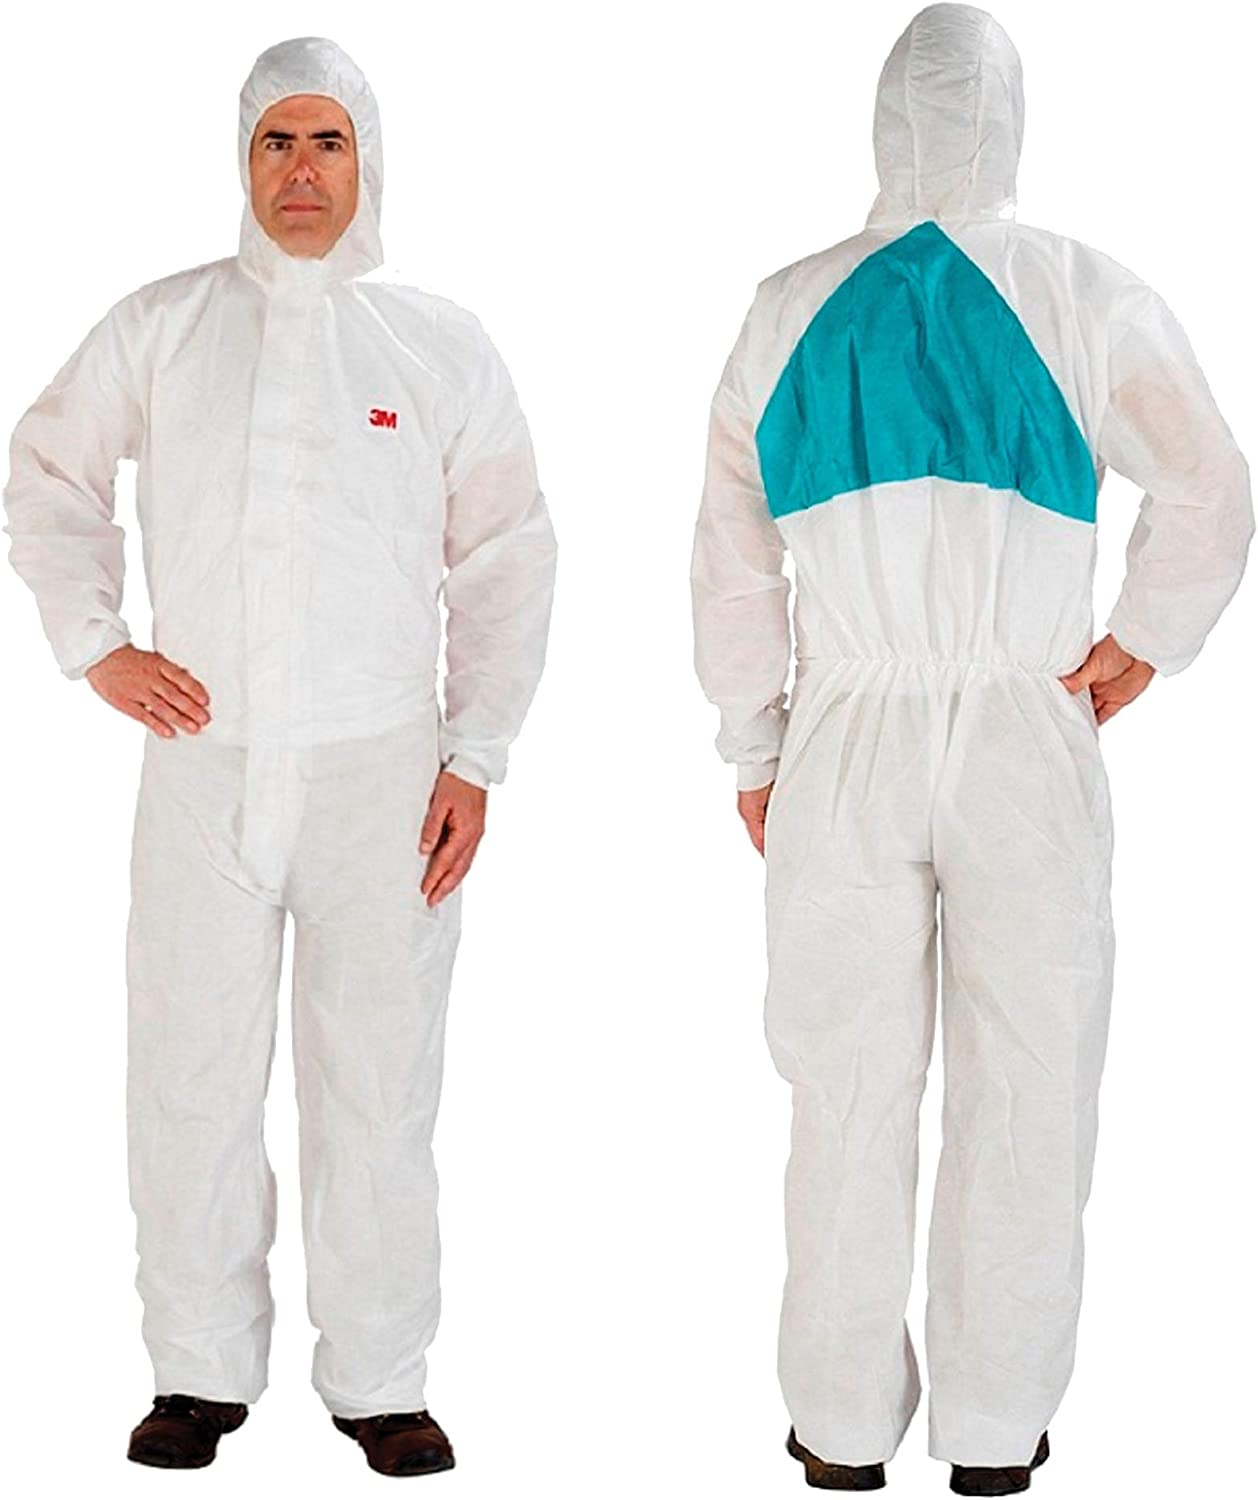 3M(TM) Disposable Protective Coverall Safety Work Wear 4520-BLK-3XL 25/Case